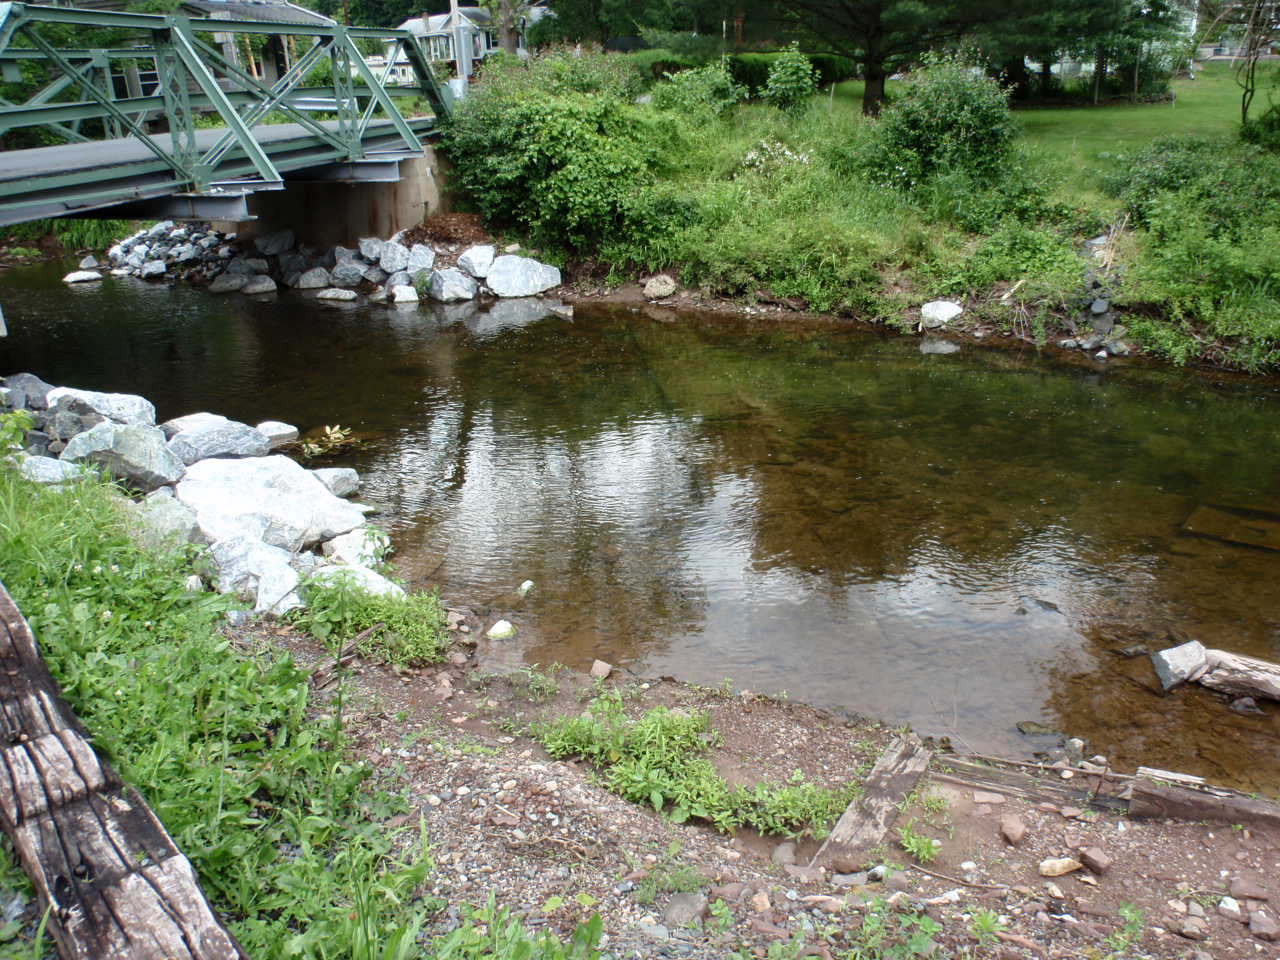 Sewer line and bridge compromised by Irene